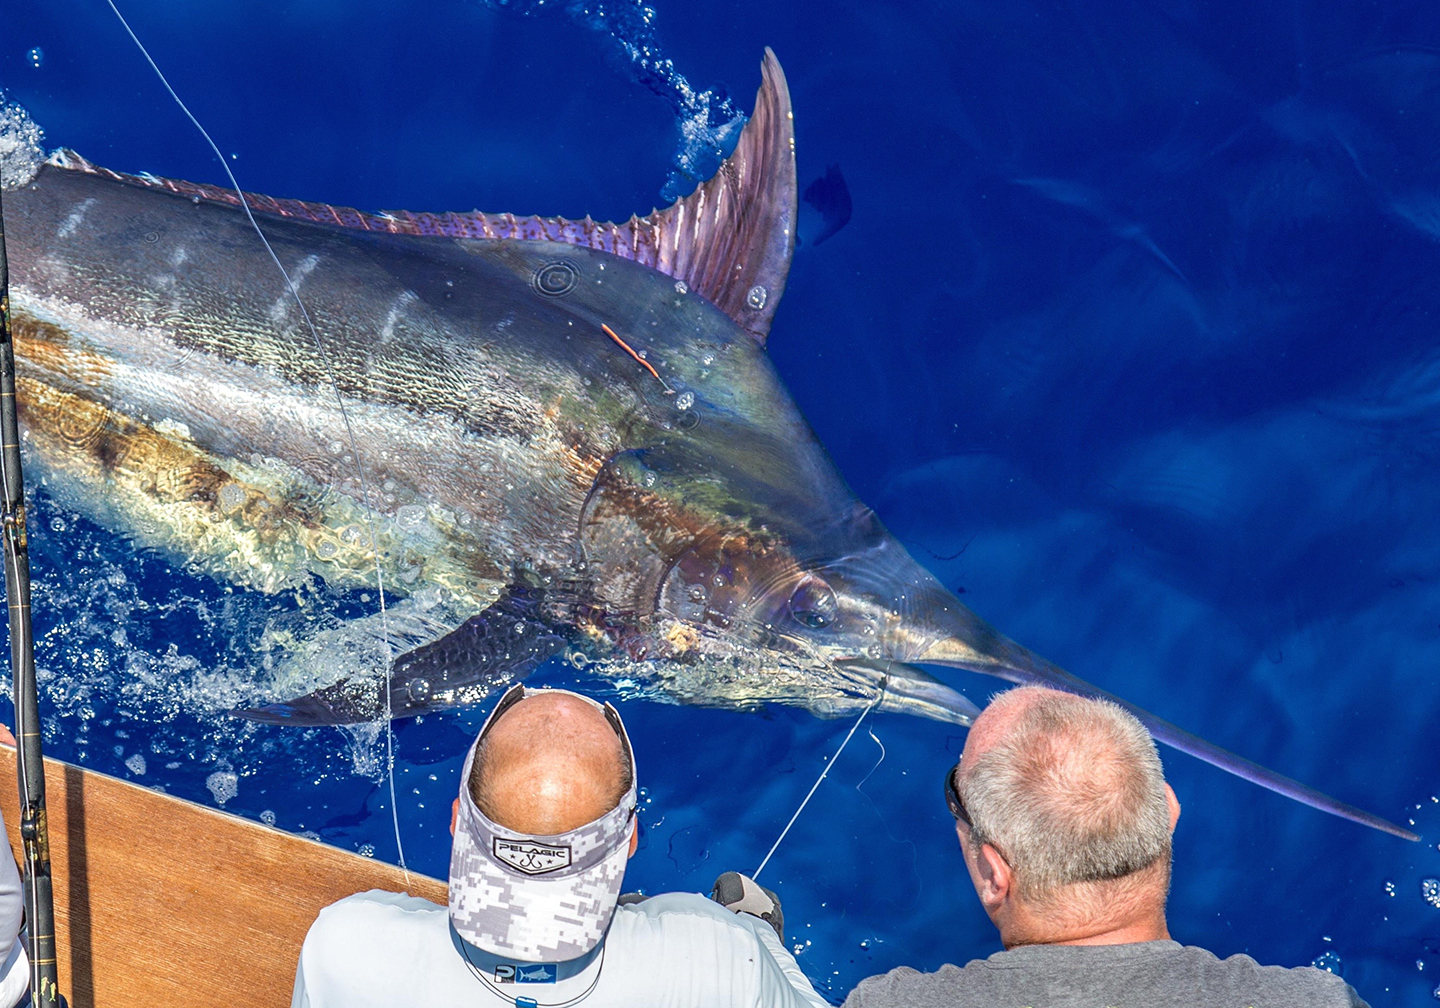 Two anglers looking at a huge Blue Marlin in the water next to their boat.